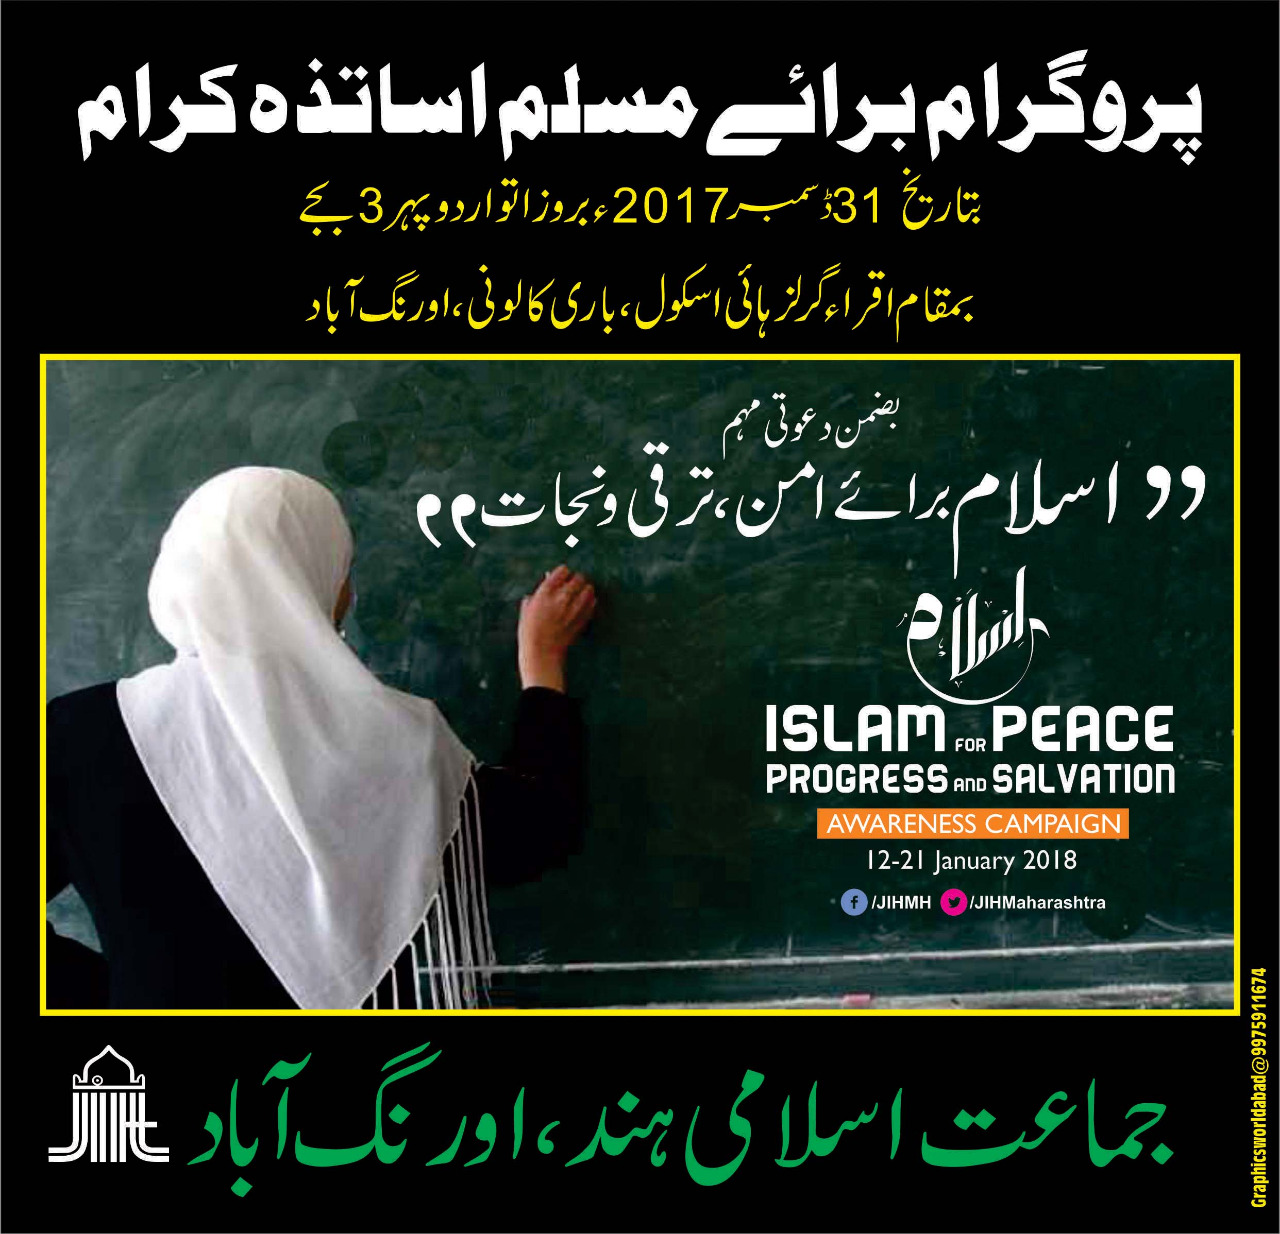 islam and peace That there is no compulsion in islam and that islam is a religion of peace are common refrains among muslim activists, [1] academics, [2] officials,.